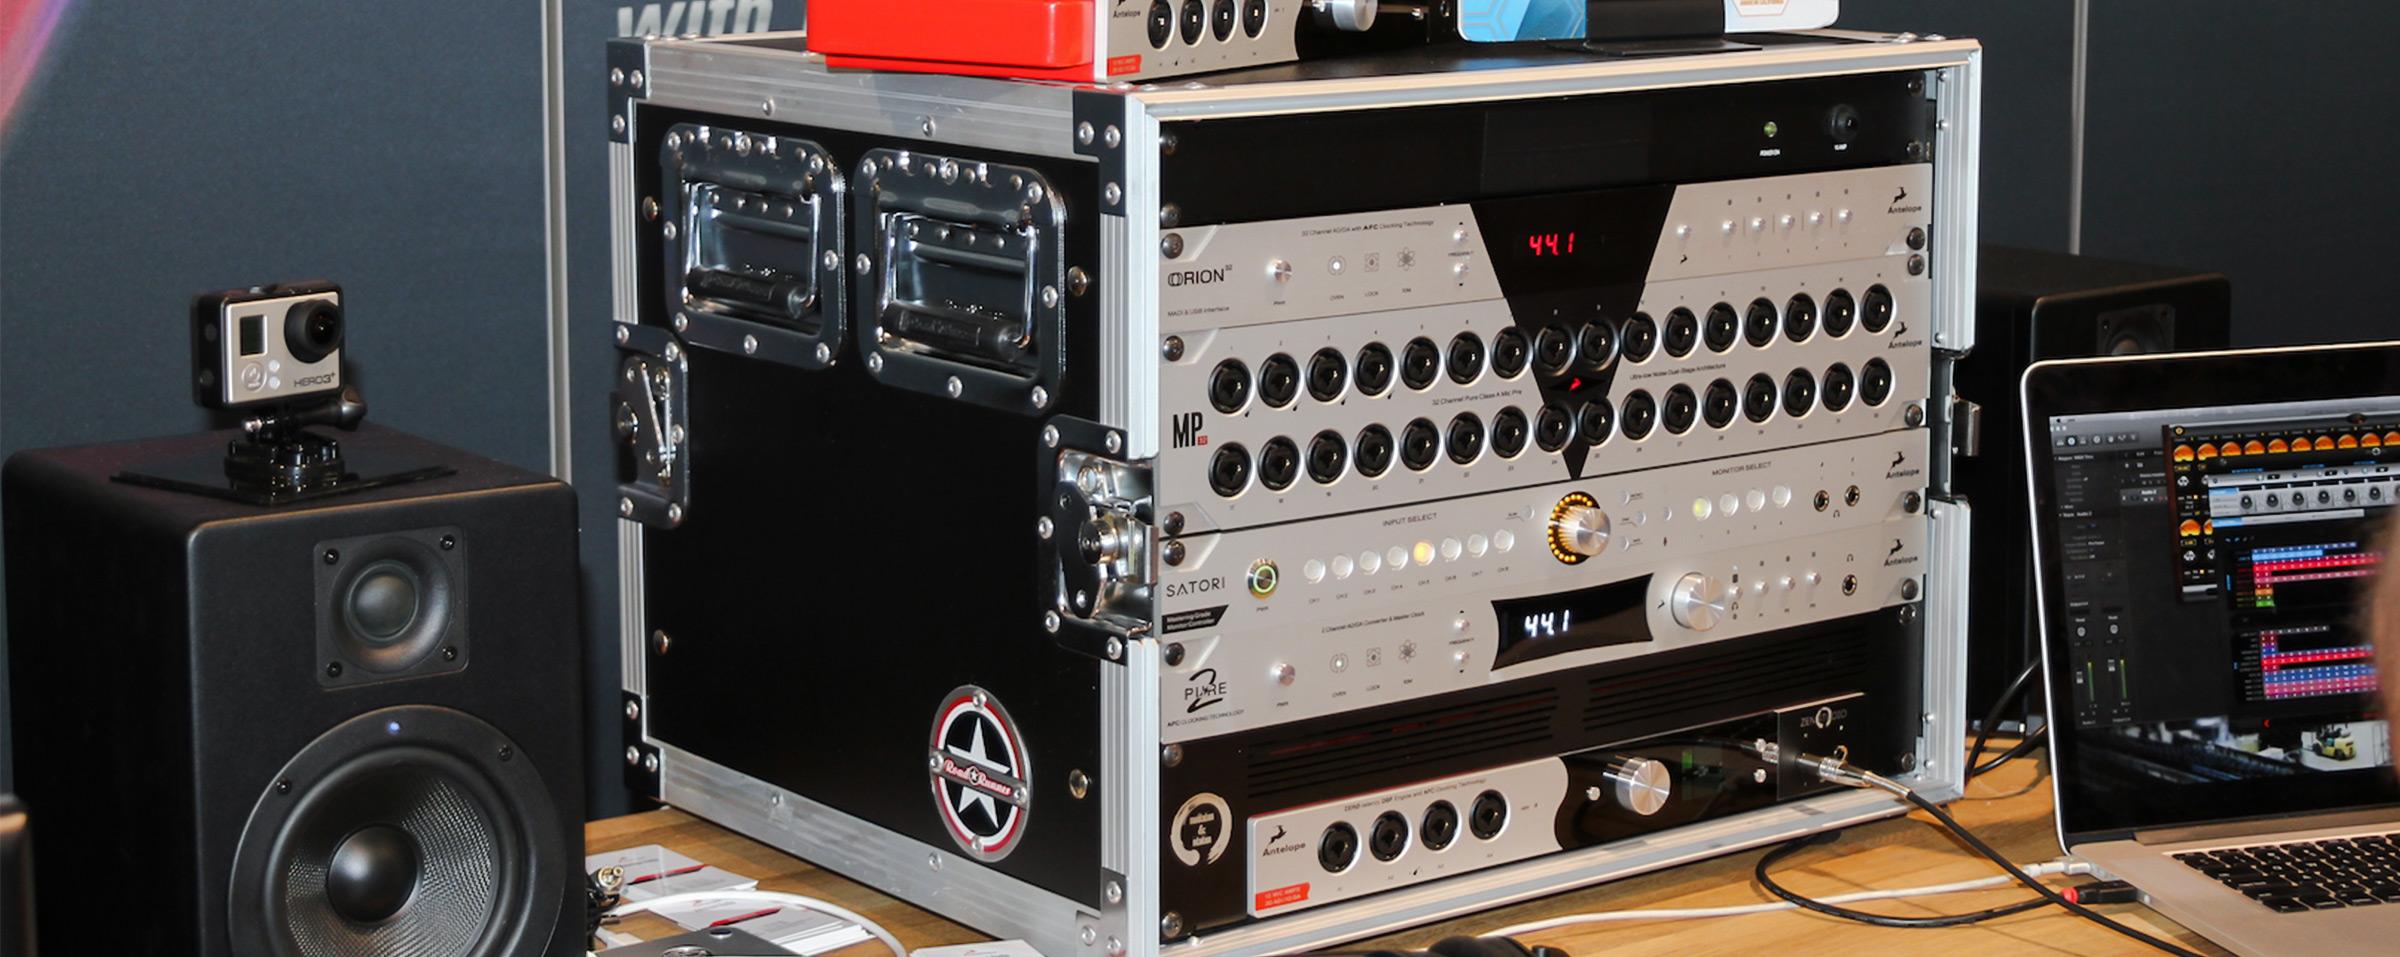 Orion 32 the world's first 32-channel AD/DA converter